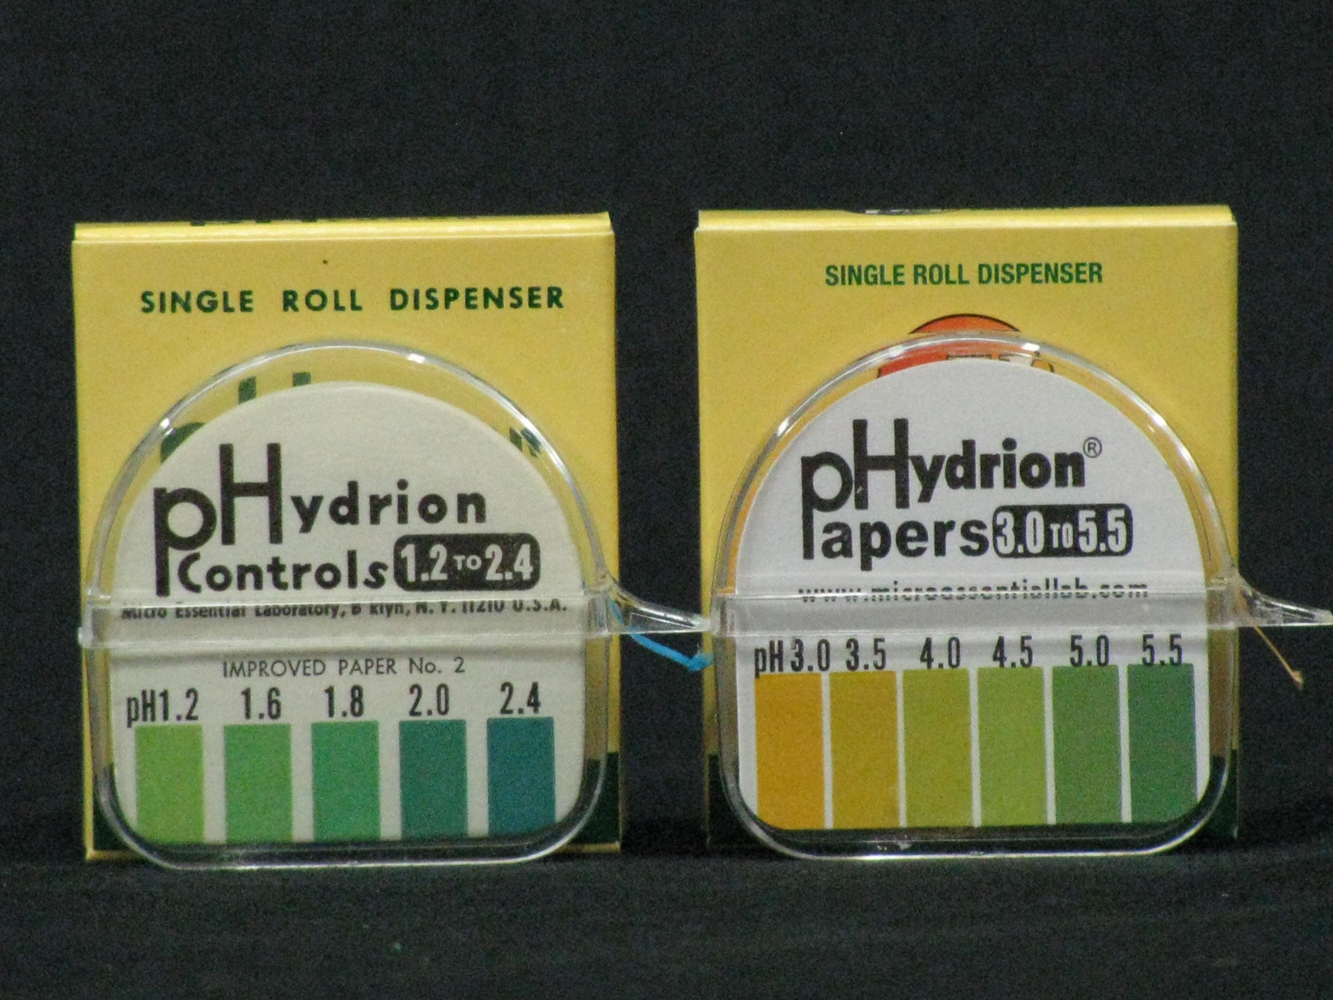 pH Paper ranges 1.2-2.4 and 3.0-5.5